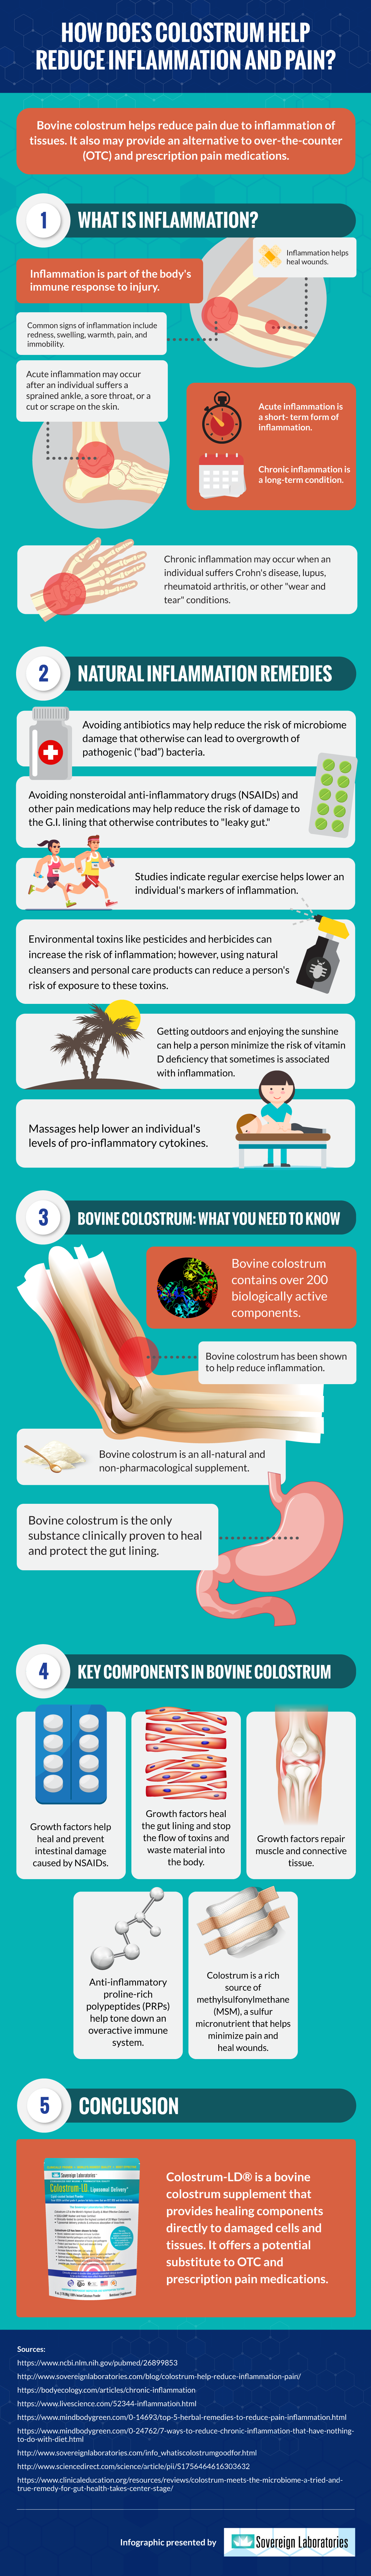 How Does Colostrum Help Reduce Inflammation and Pain